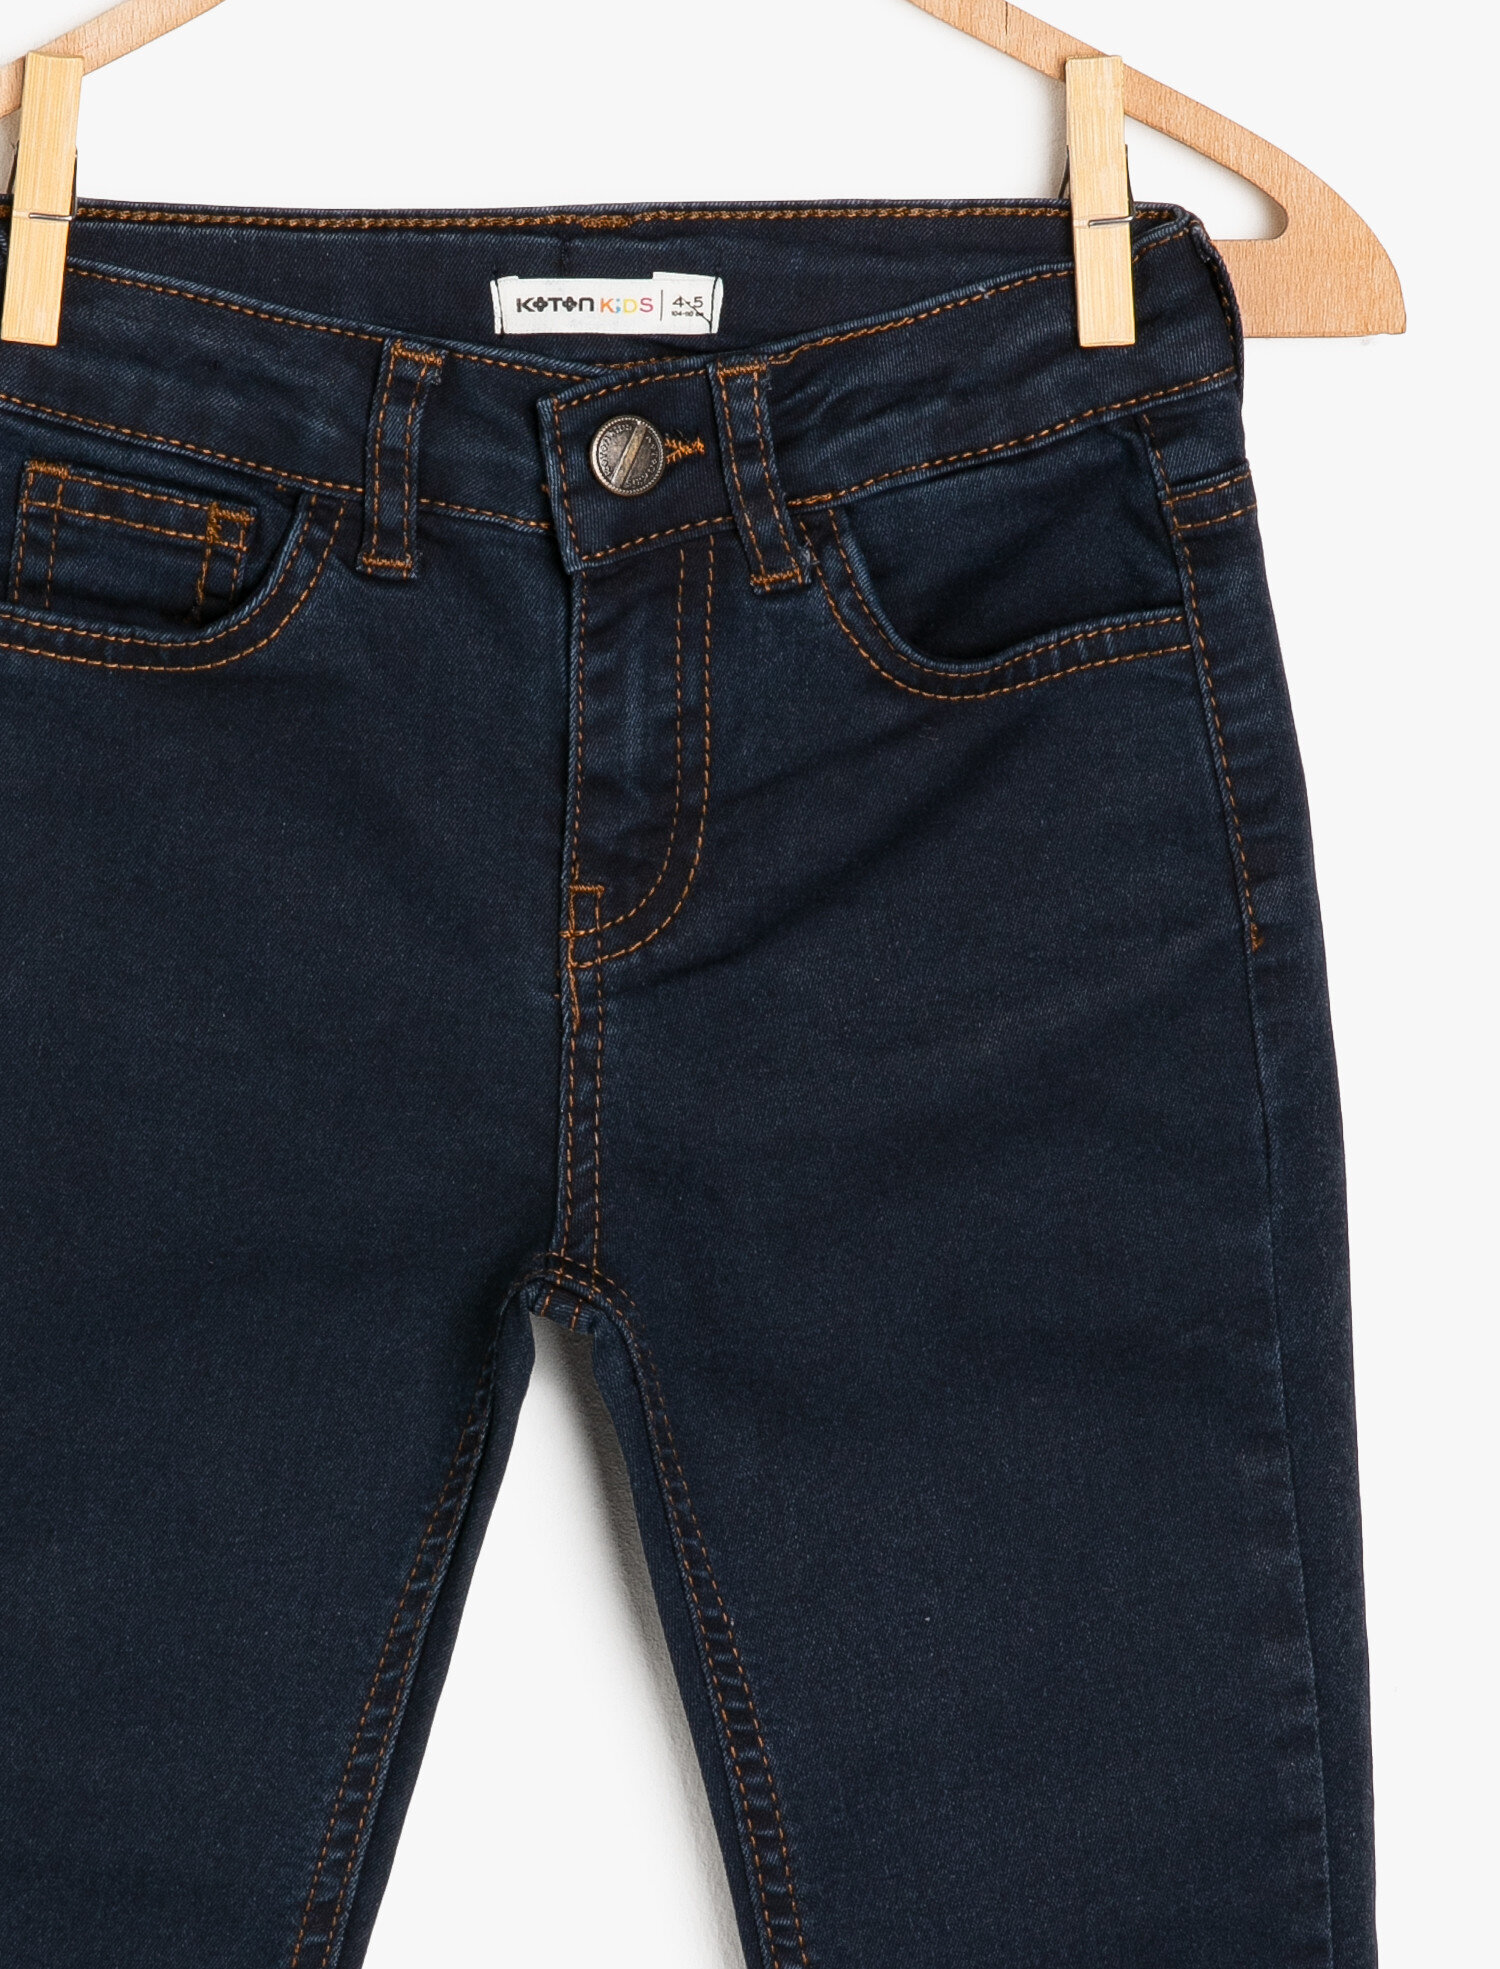 Clothing, Shoes & Accessories 3 Pairs Of Boys Jeans Age 6-9 Mths Boys' Clothing (newborn-5t) From Next & Early Days